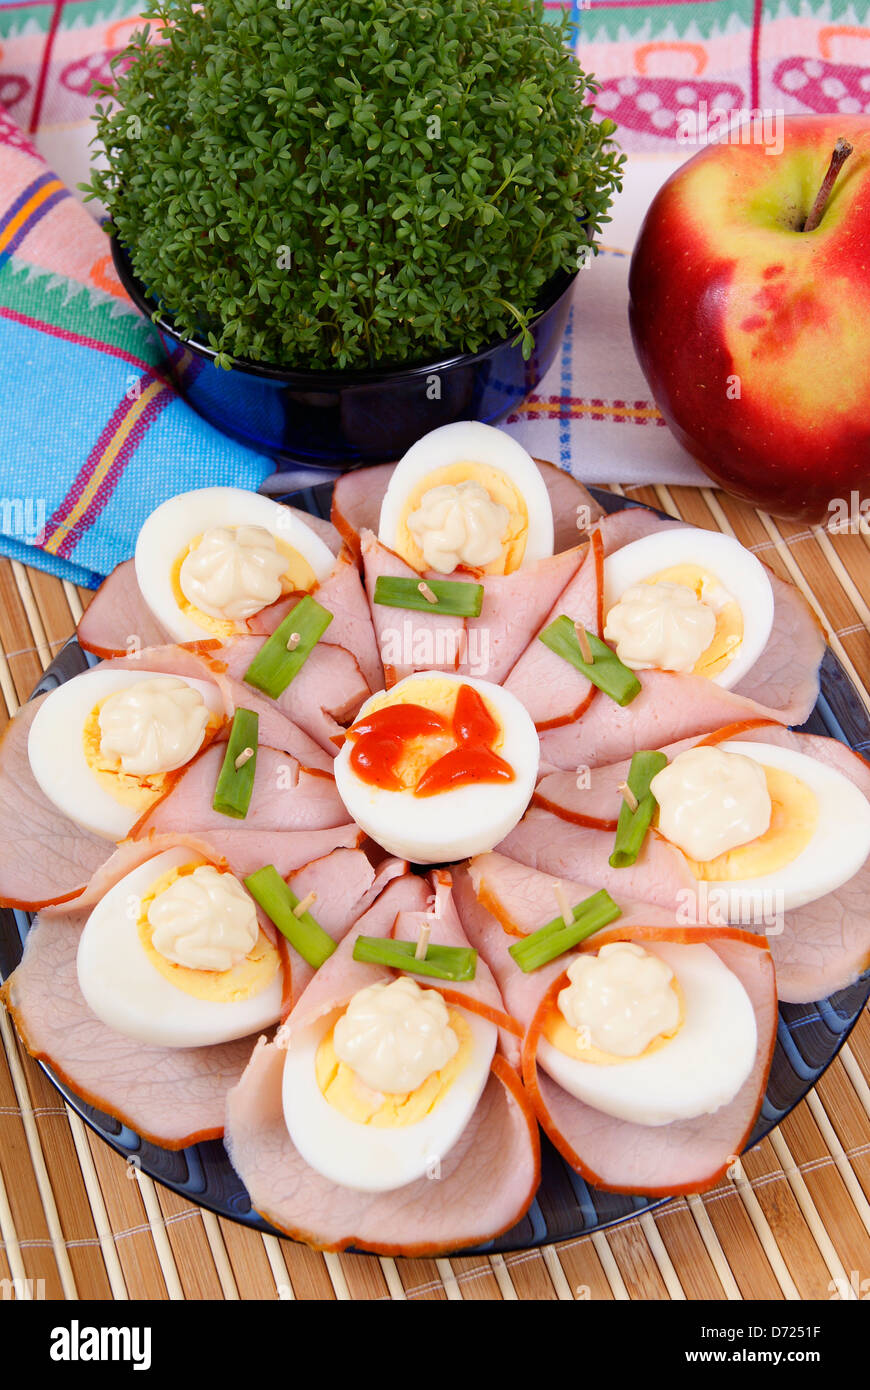 halfes of eggs with cress made as background - Stock Image